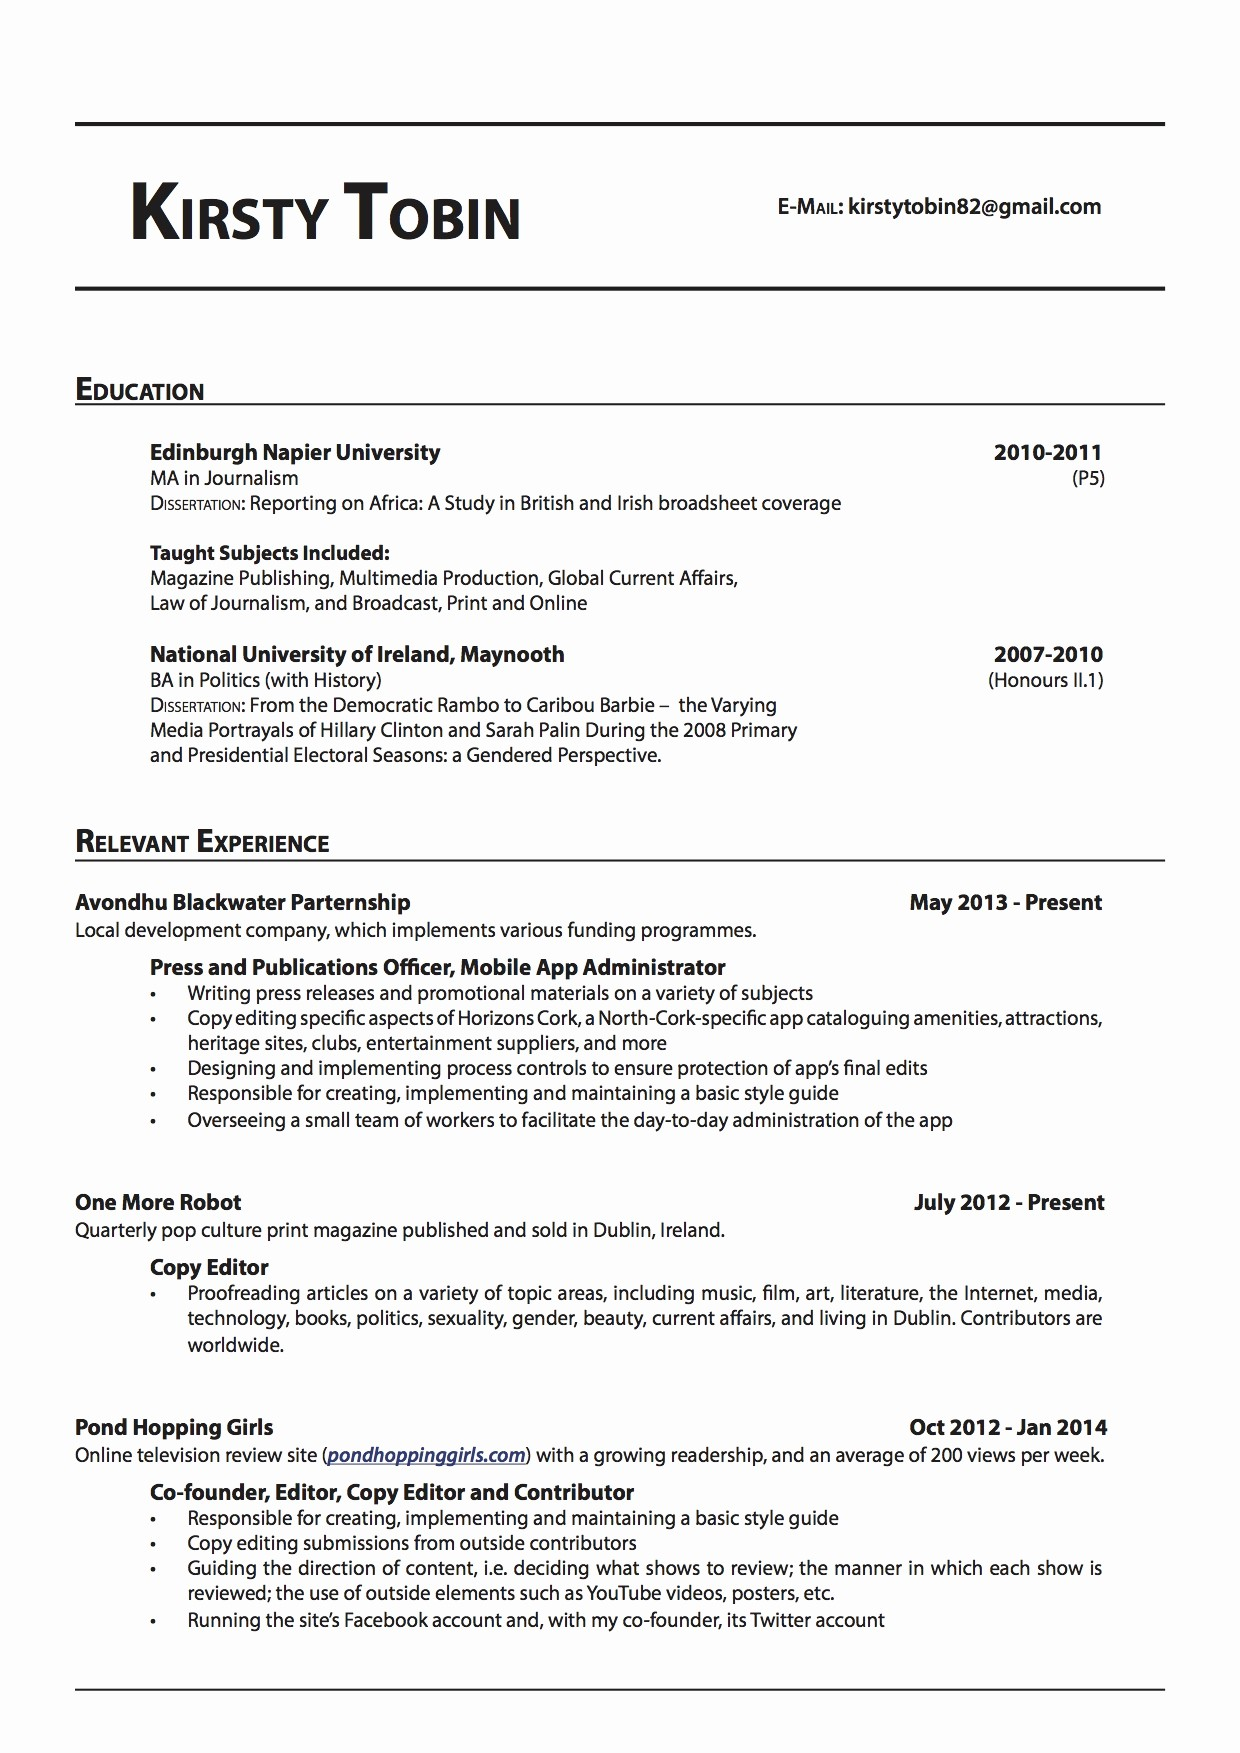 Copy Of A Resume format Unique Resume Copy and Paste formatting Sidemcicek